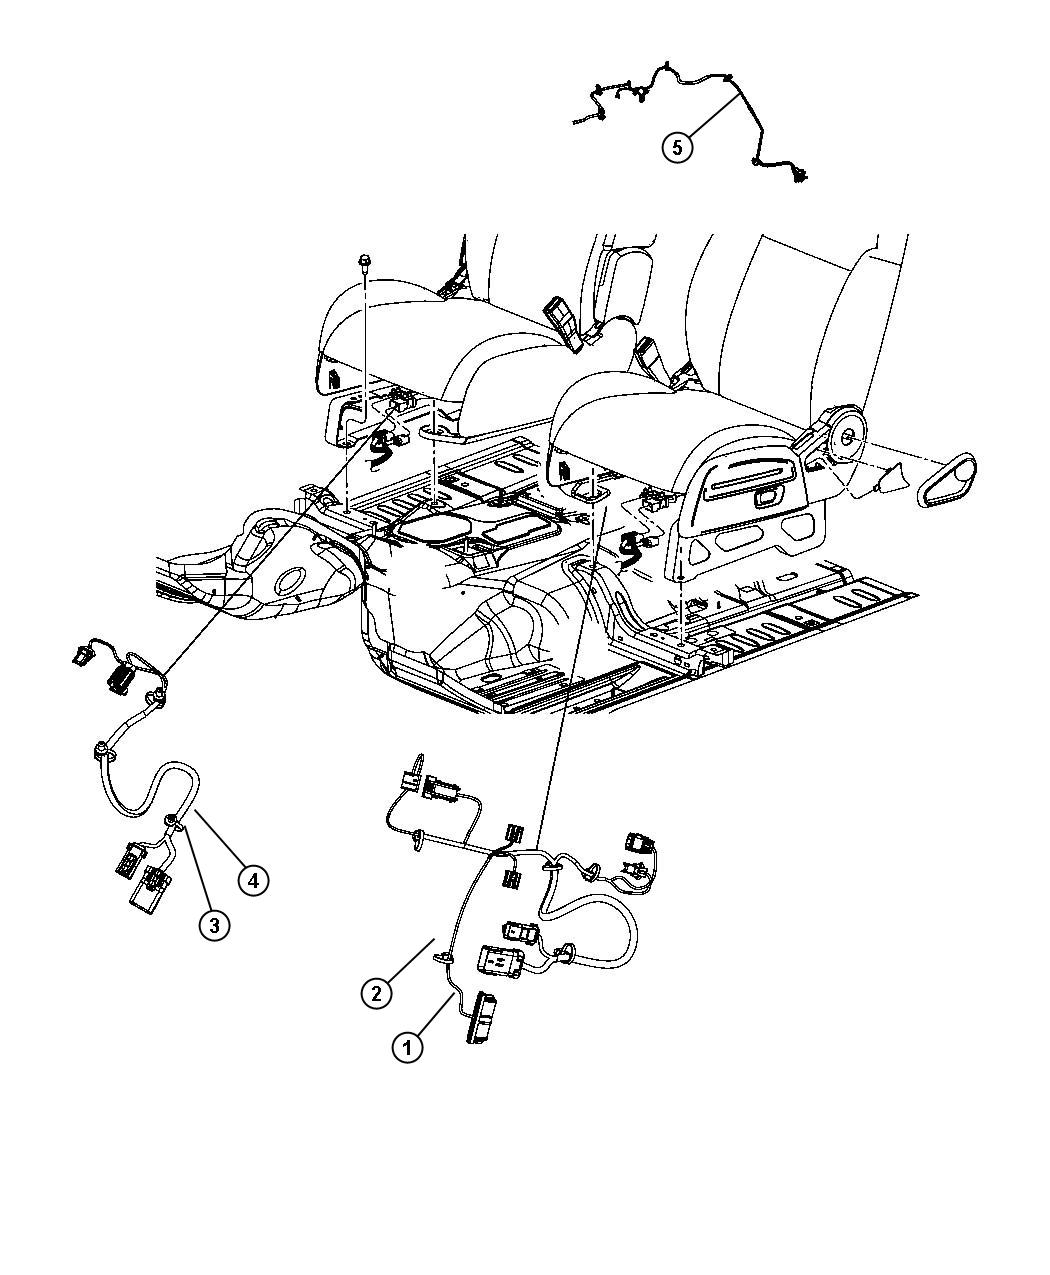 Jeep Liberty Wiring Seat 6 Way Power Fold Flat Seat